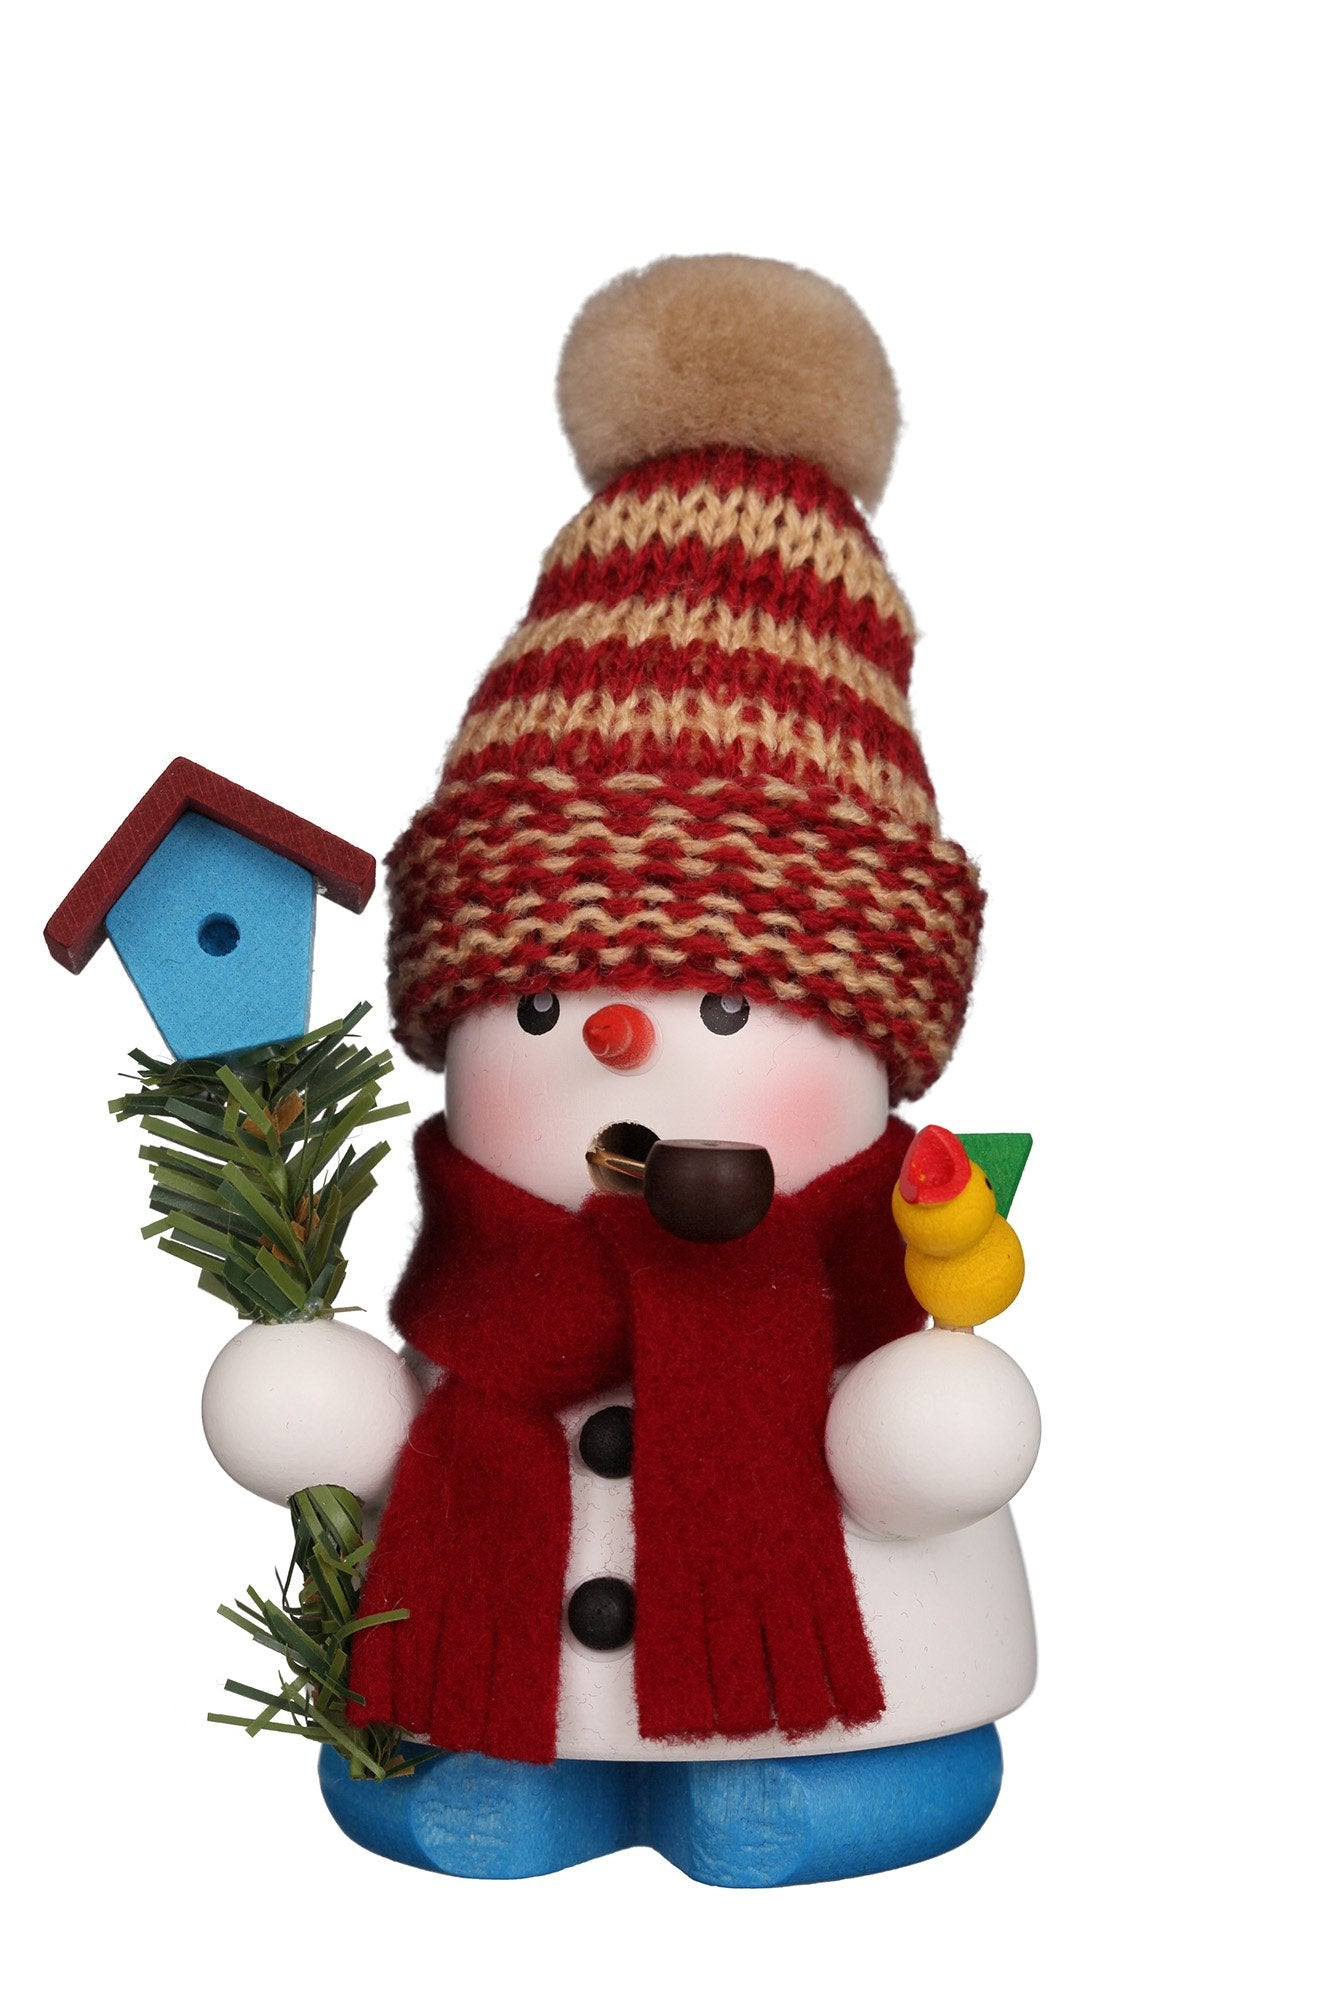 Incense Burner - Mini - Snowman with Birdhouse